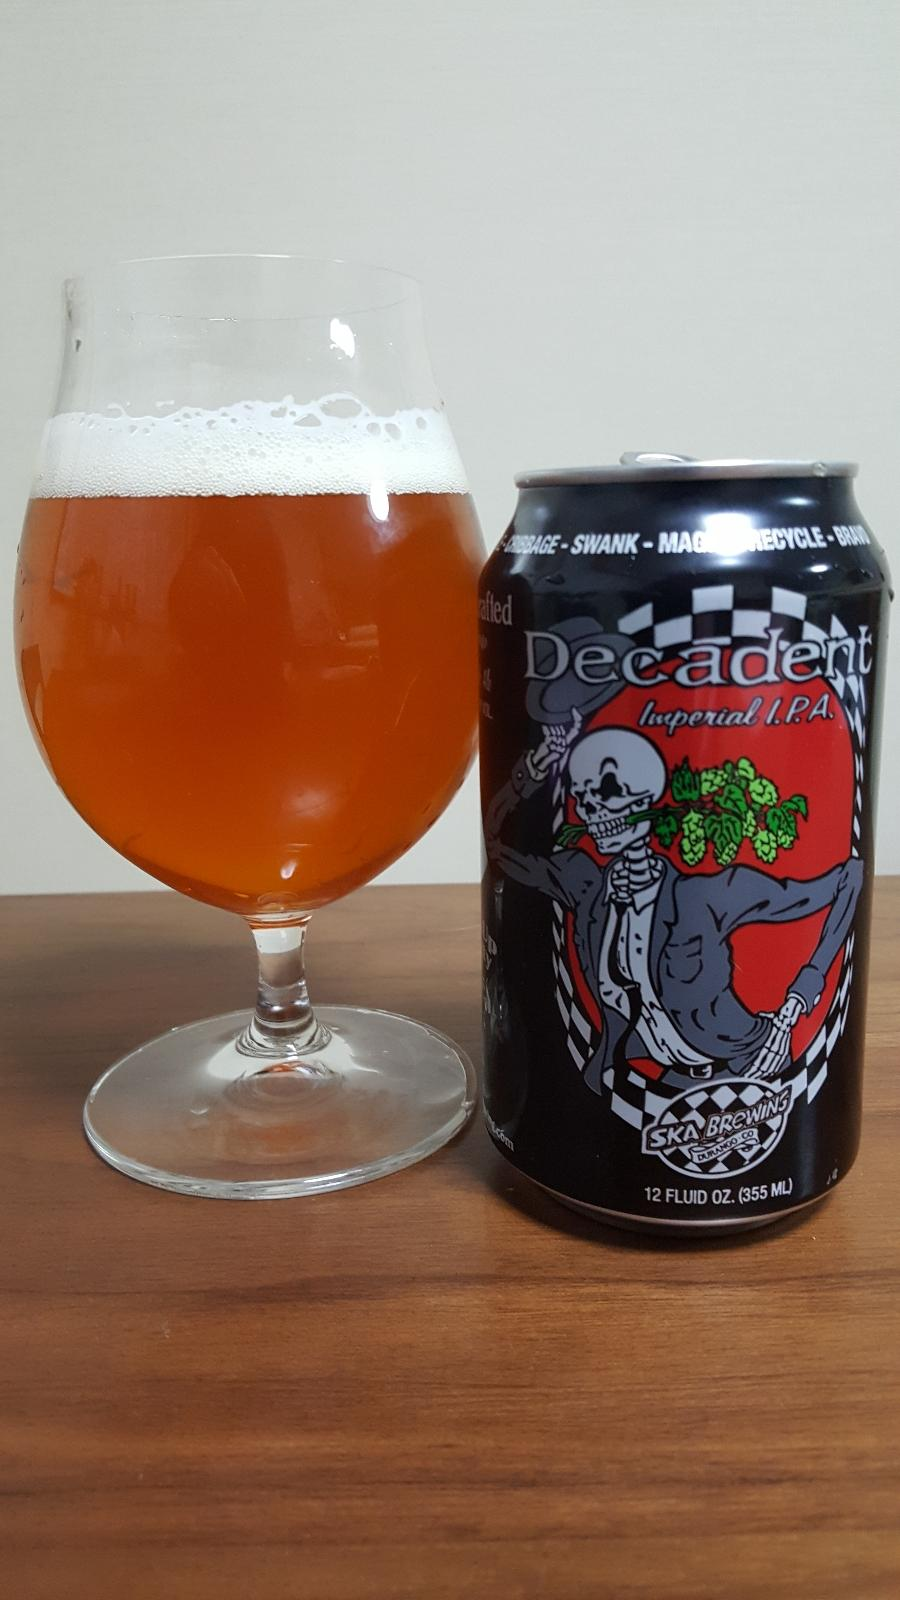 Decadent Imperial IPA